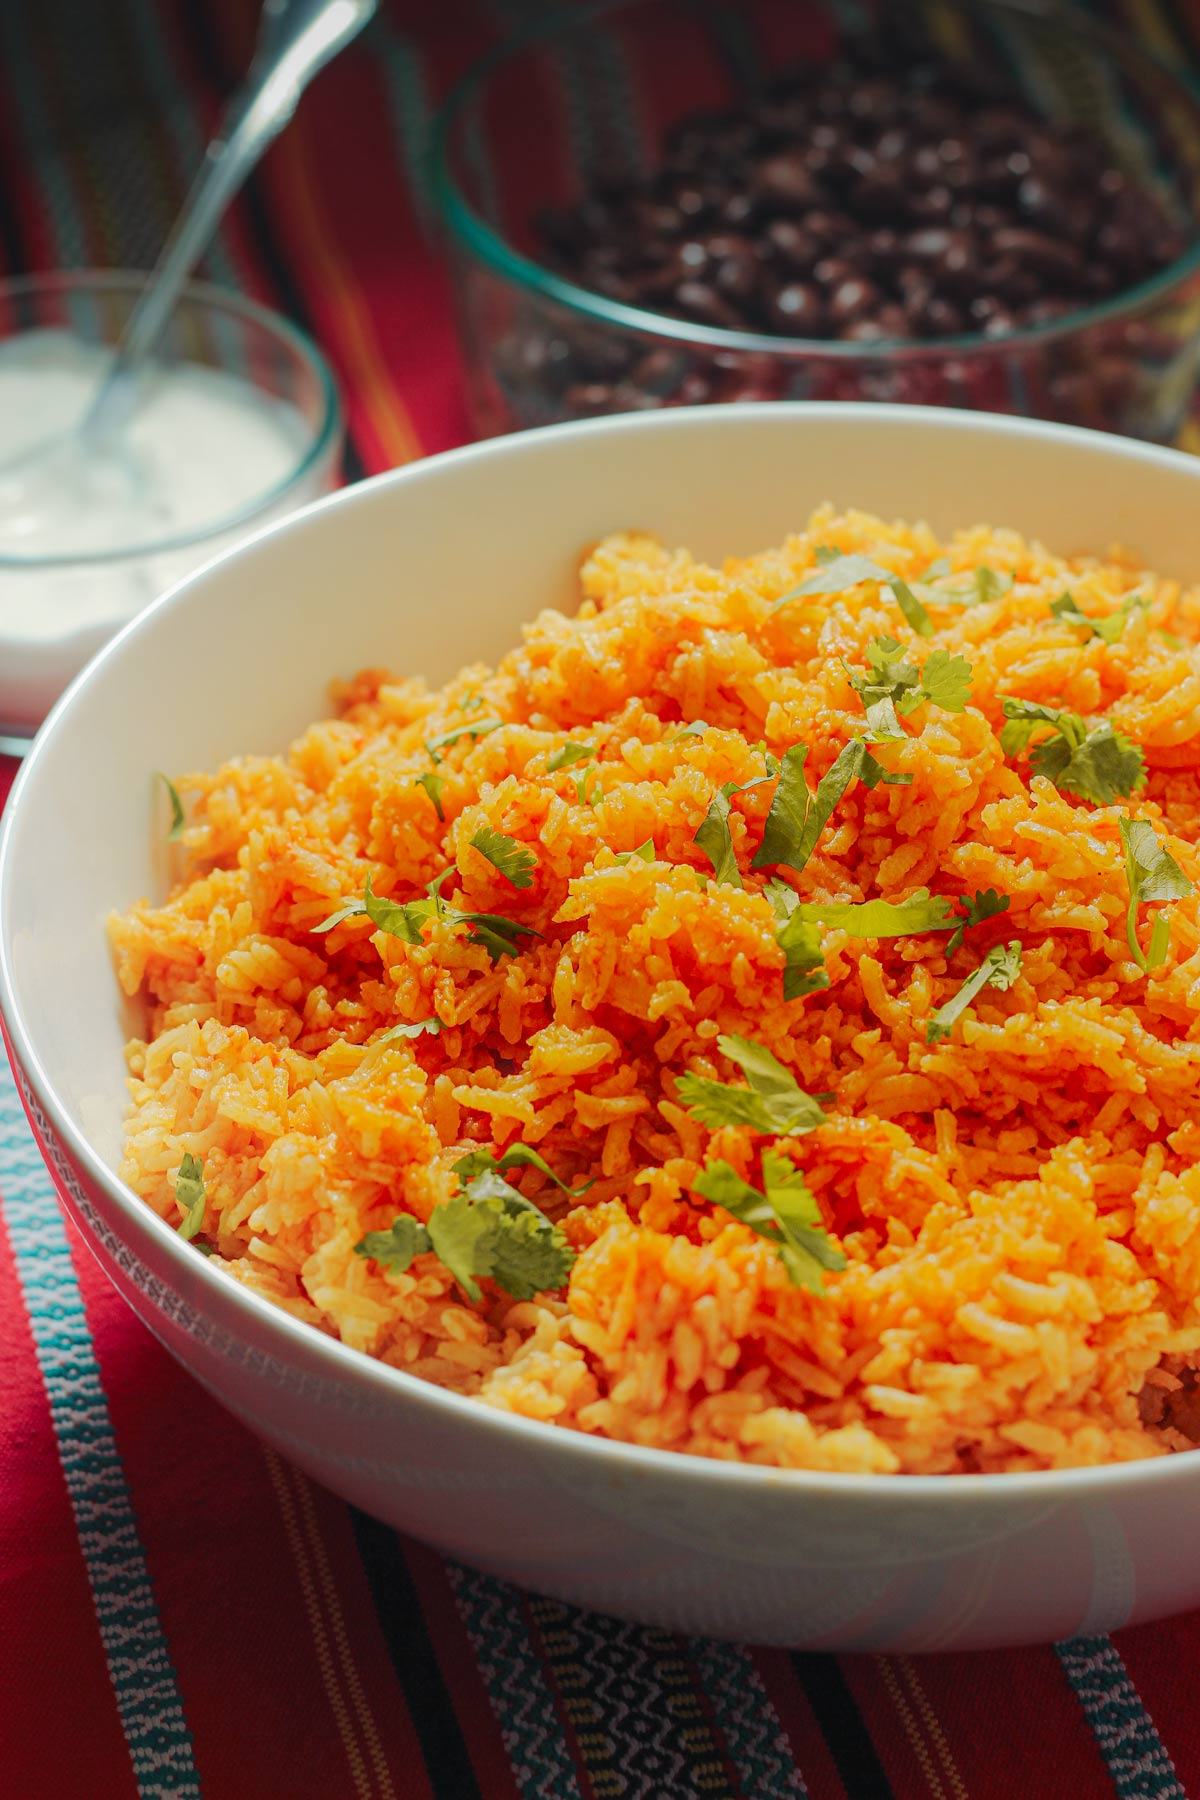 Mexican rice in large white bowl on dinner table.